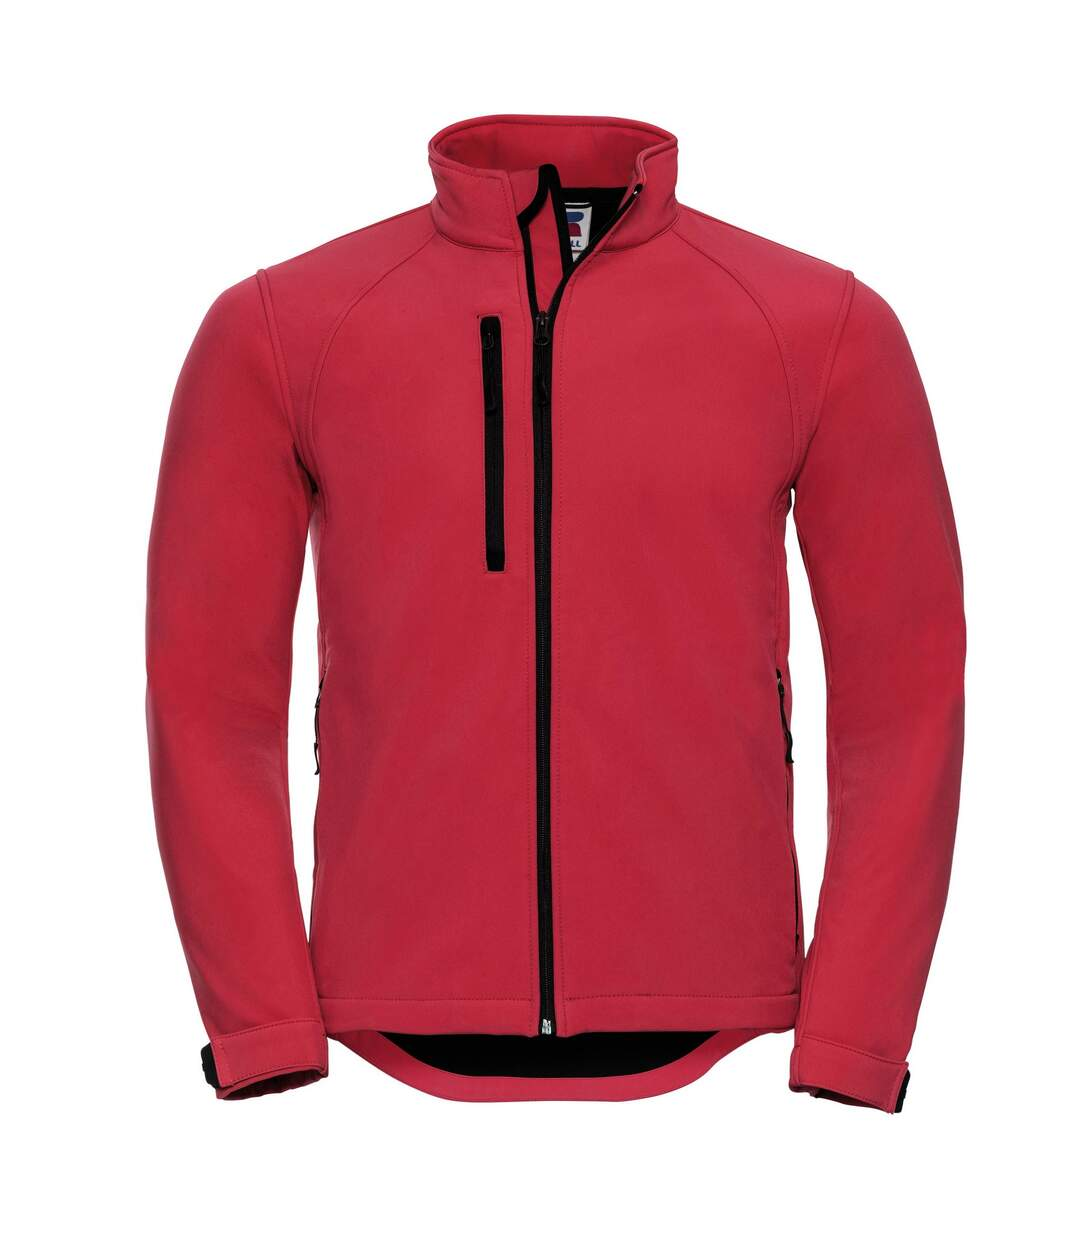 Russell Mens Water Resistant & Windproof Softshell Jacket (Classic Red) - UTBC562